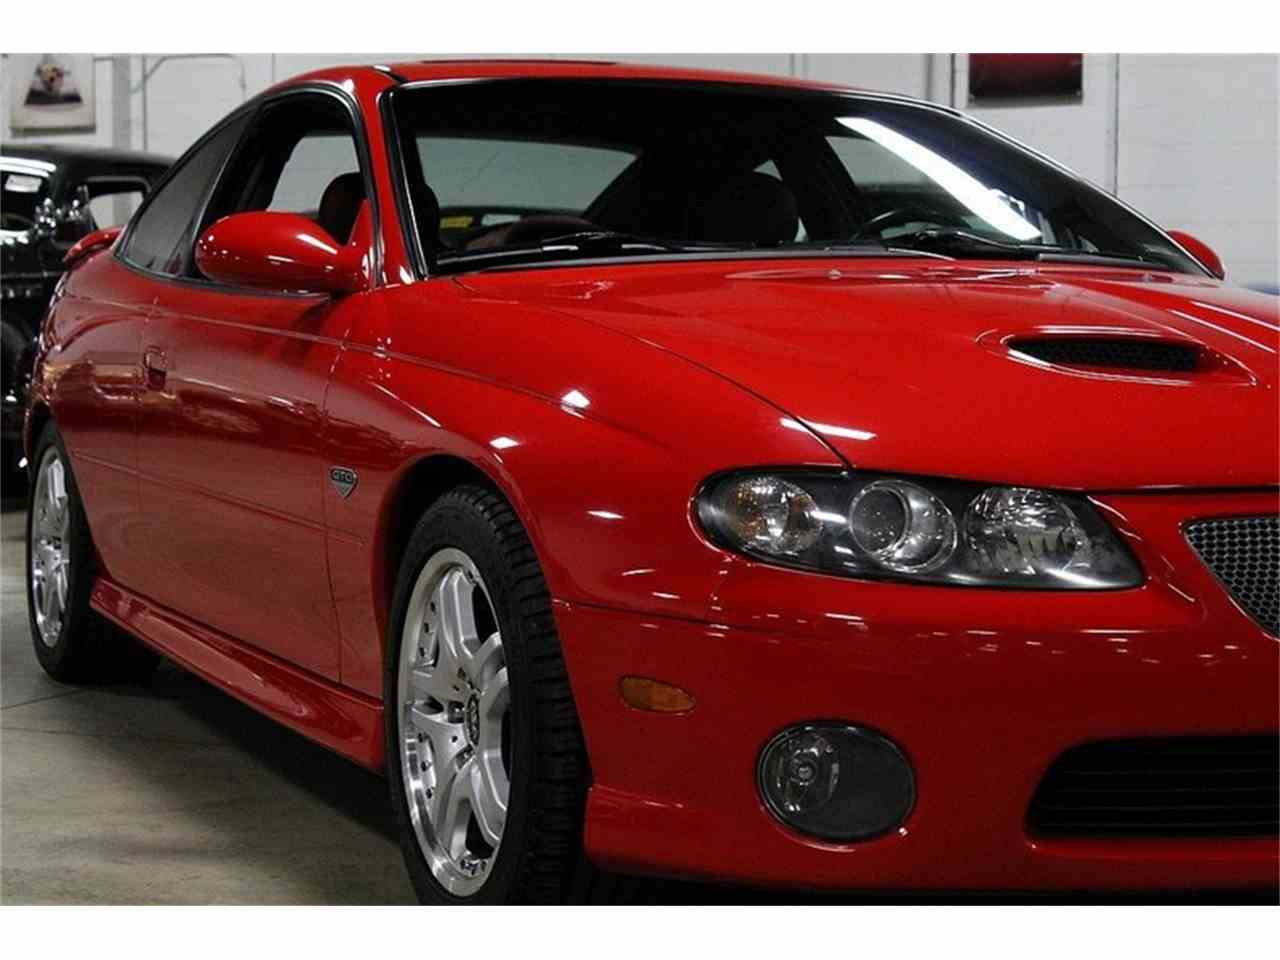 Large Picture of 2005 Pontiac GTO - $18,900.00 - L6DM